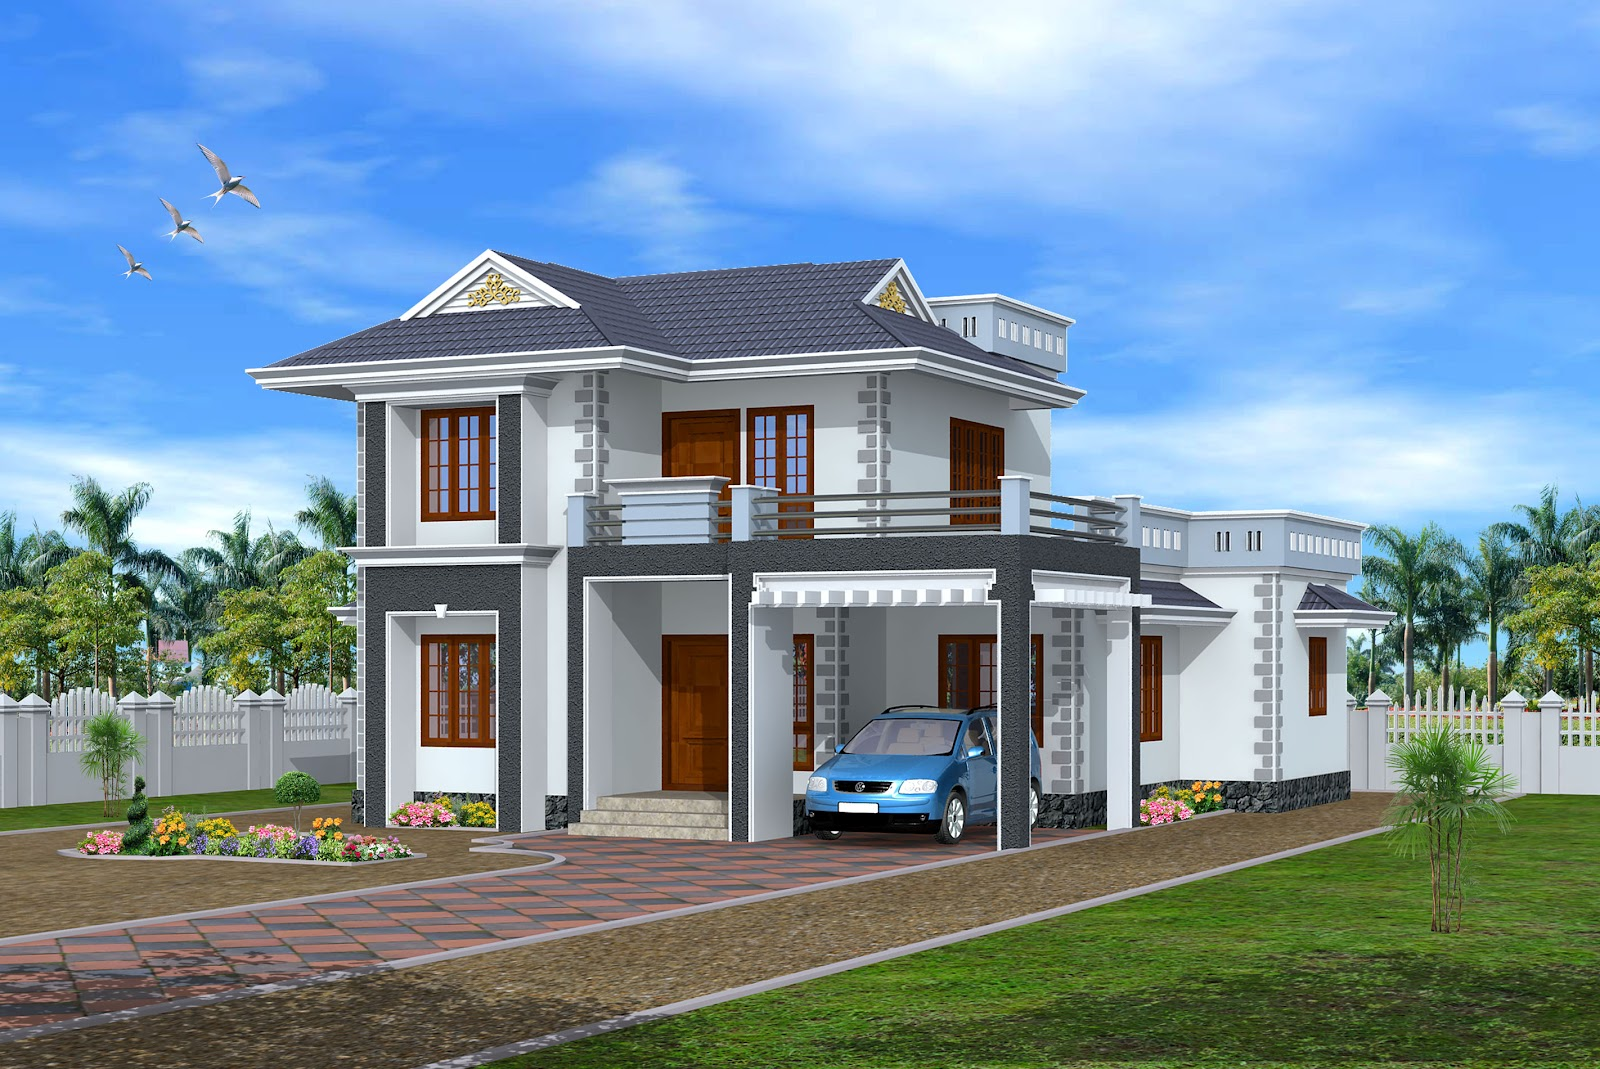 New home designs latest modern homes exterior designs views for Exterior design of small houses